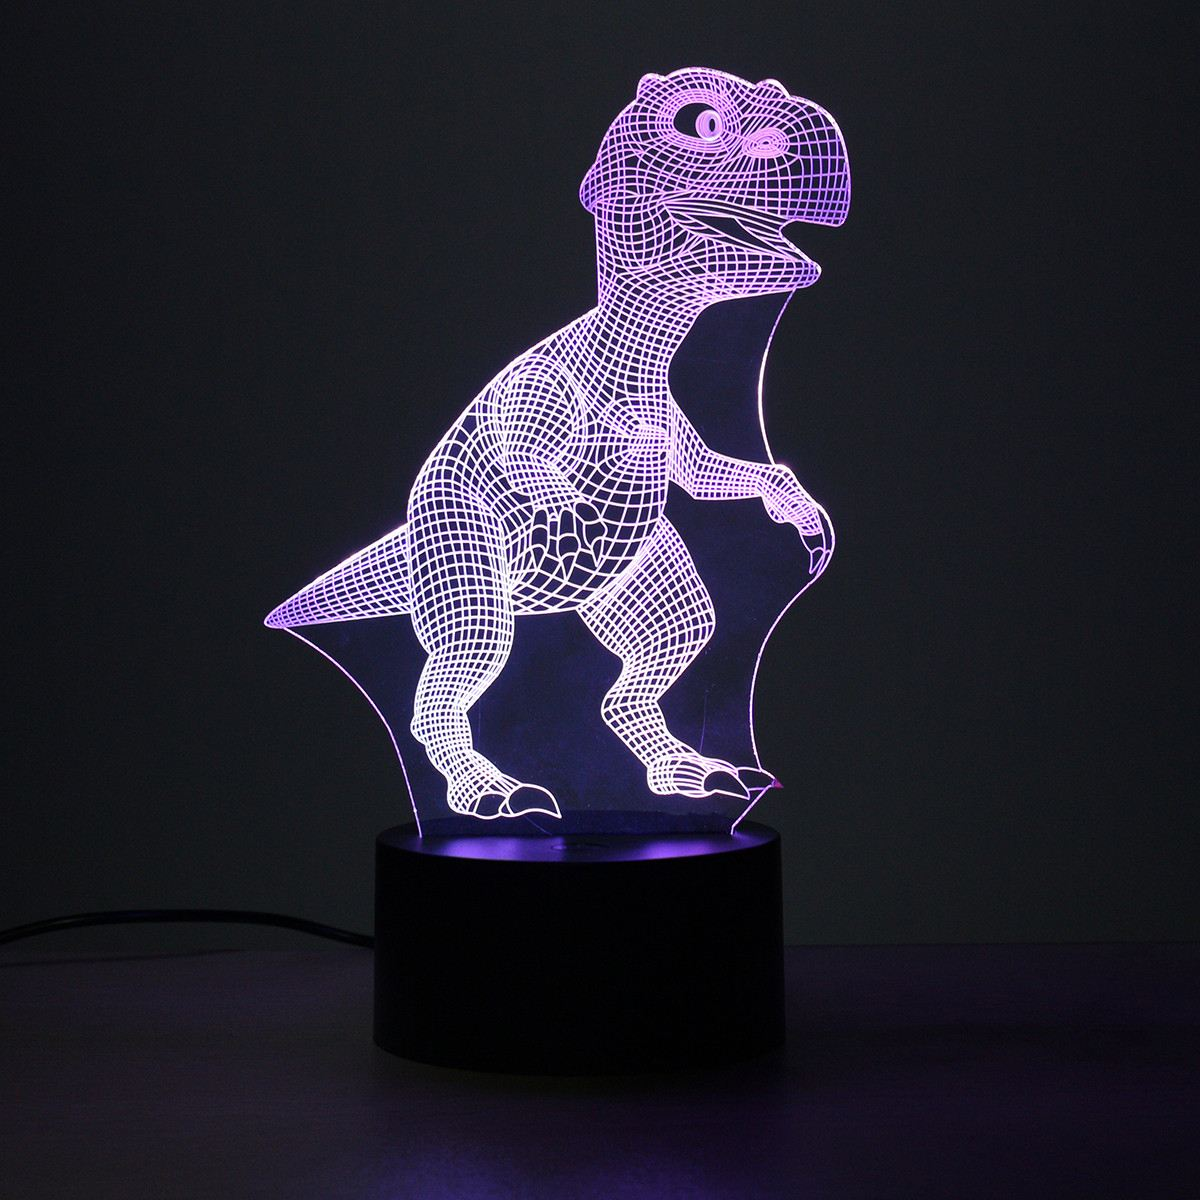 Colorful Dinosaur Shape 3D LED Night Light Button Switch Table Lamp For Christmas Party Gift Toy Bedroom Home Decor Lighting novelty 3d minions night light led table lamp touch desk lighting colorful for child baby gift birthday party bedroom home decor